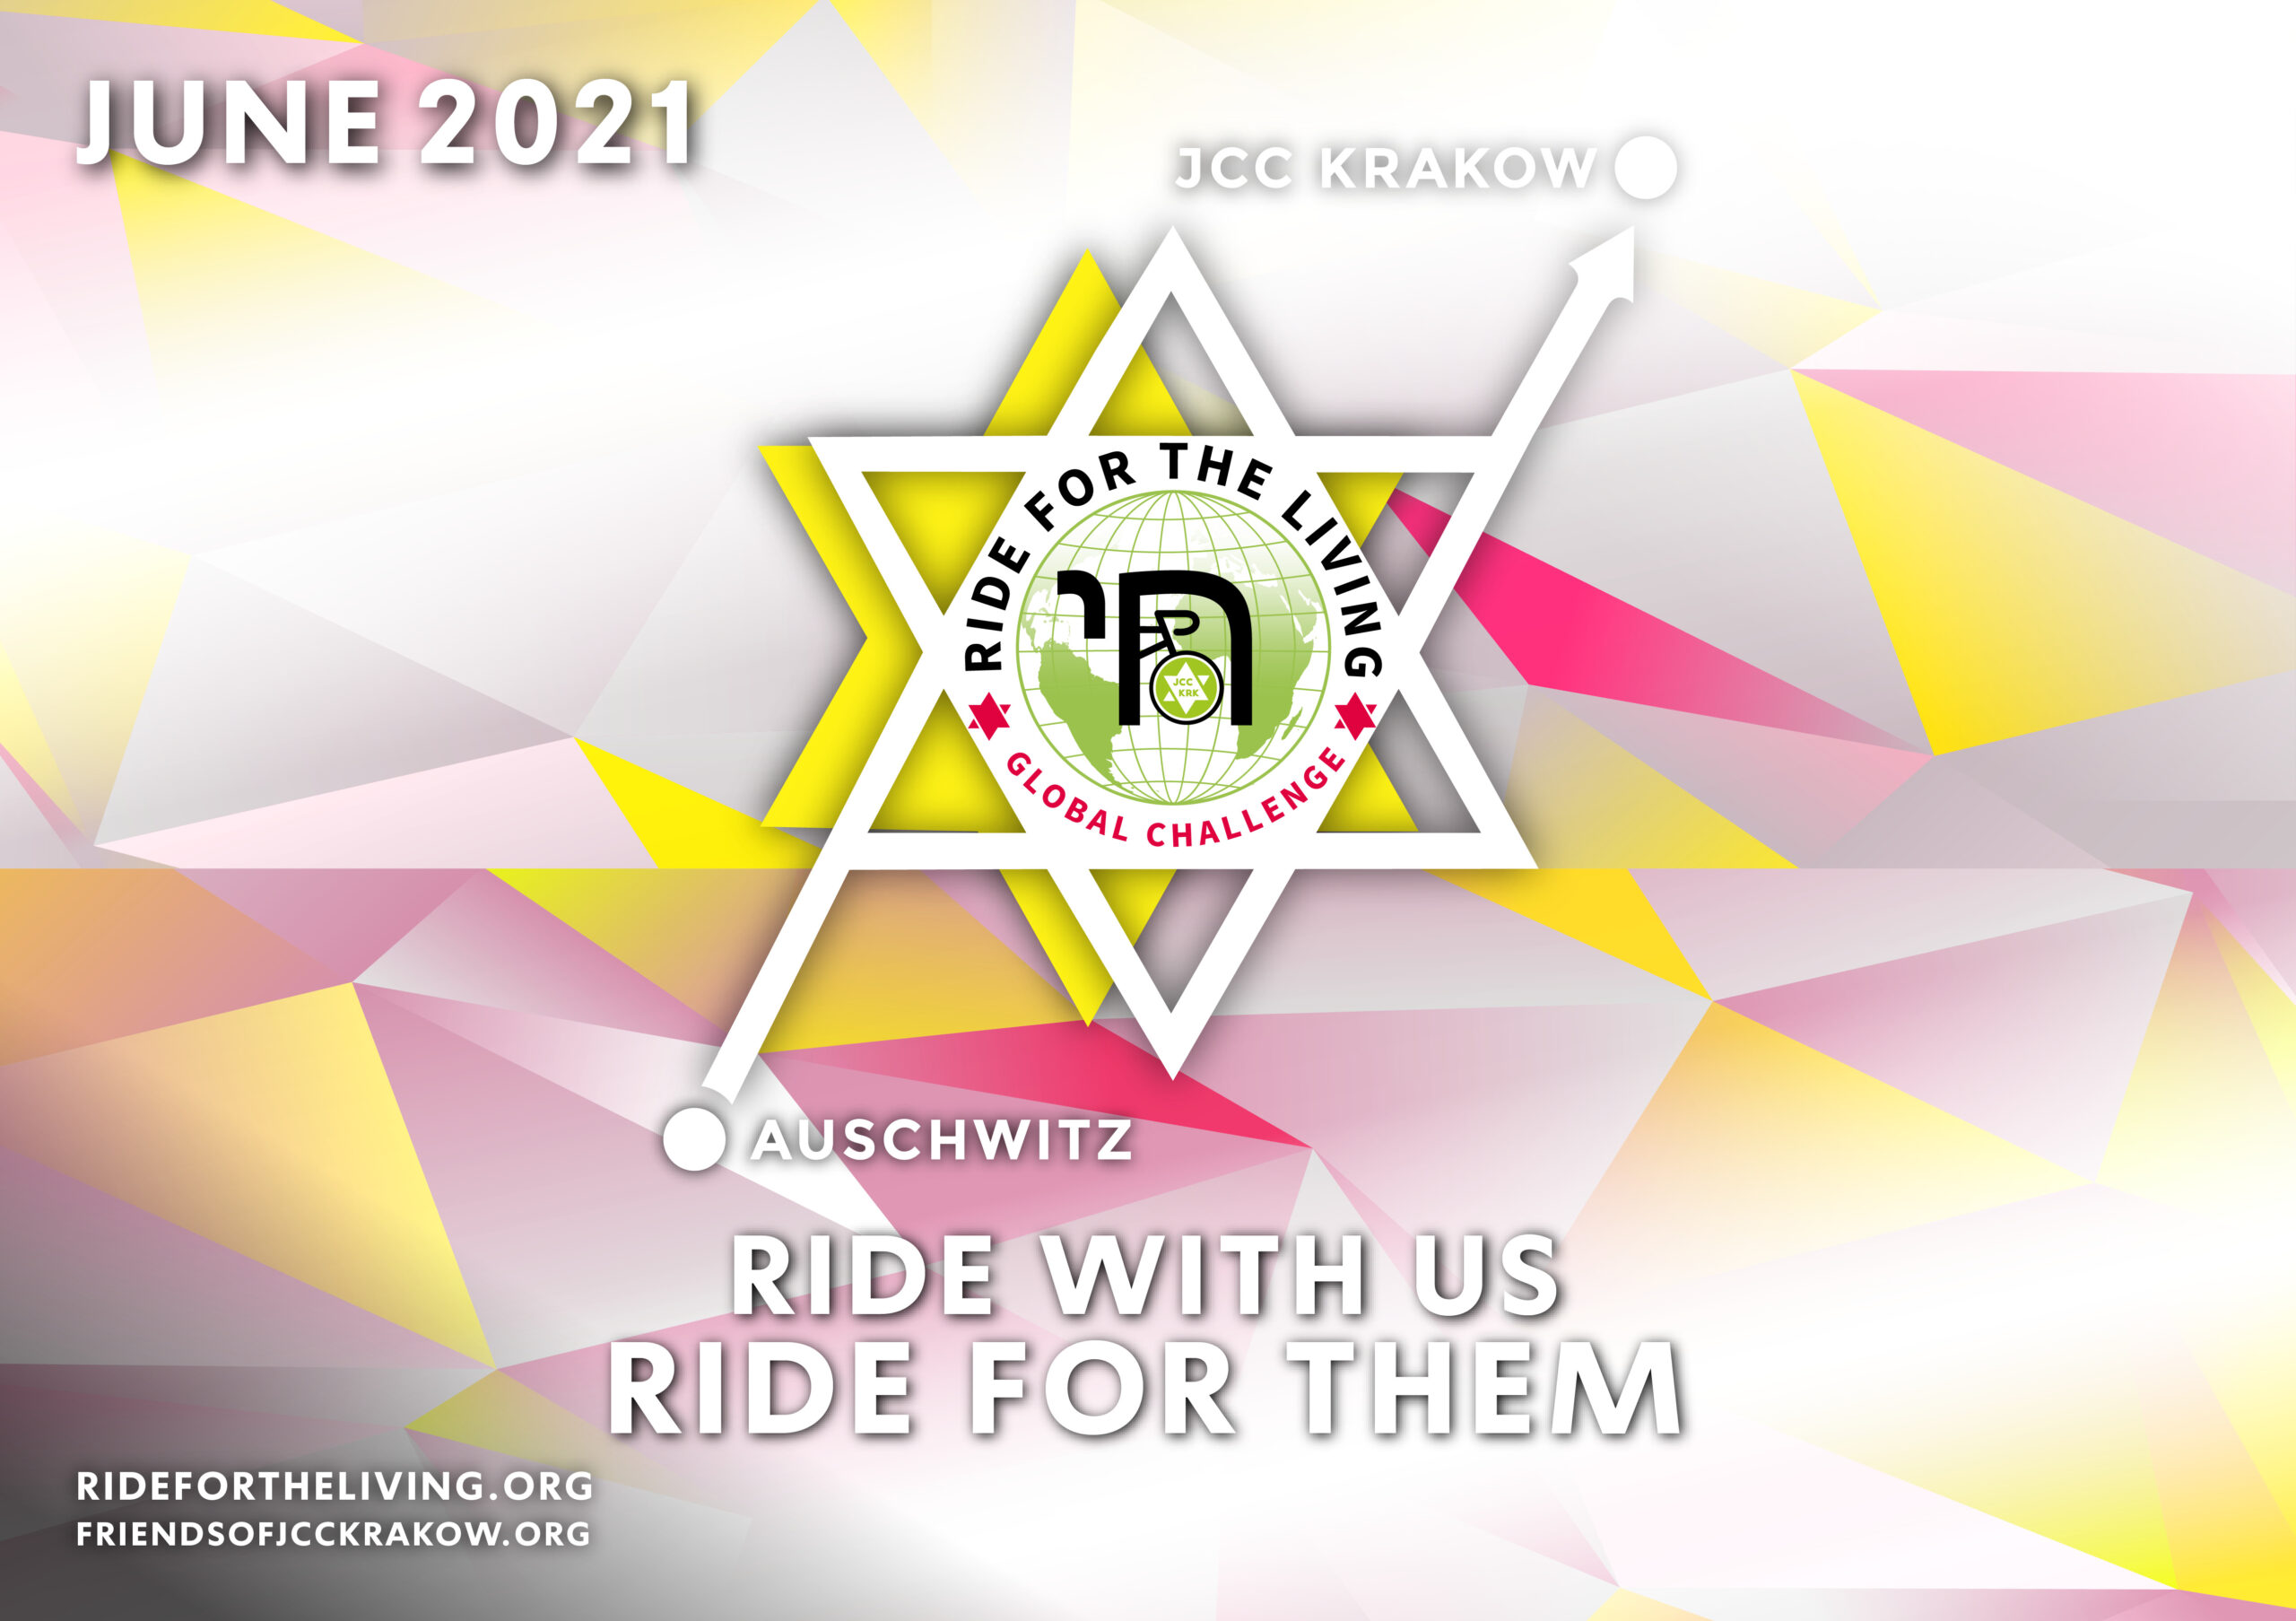 🚲☀️Ride With Us. Ride For Them.